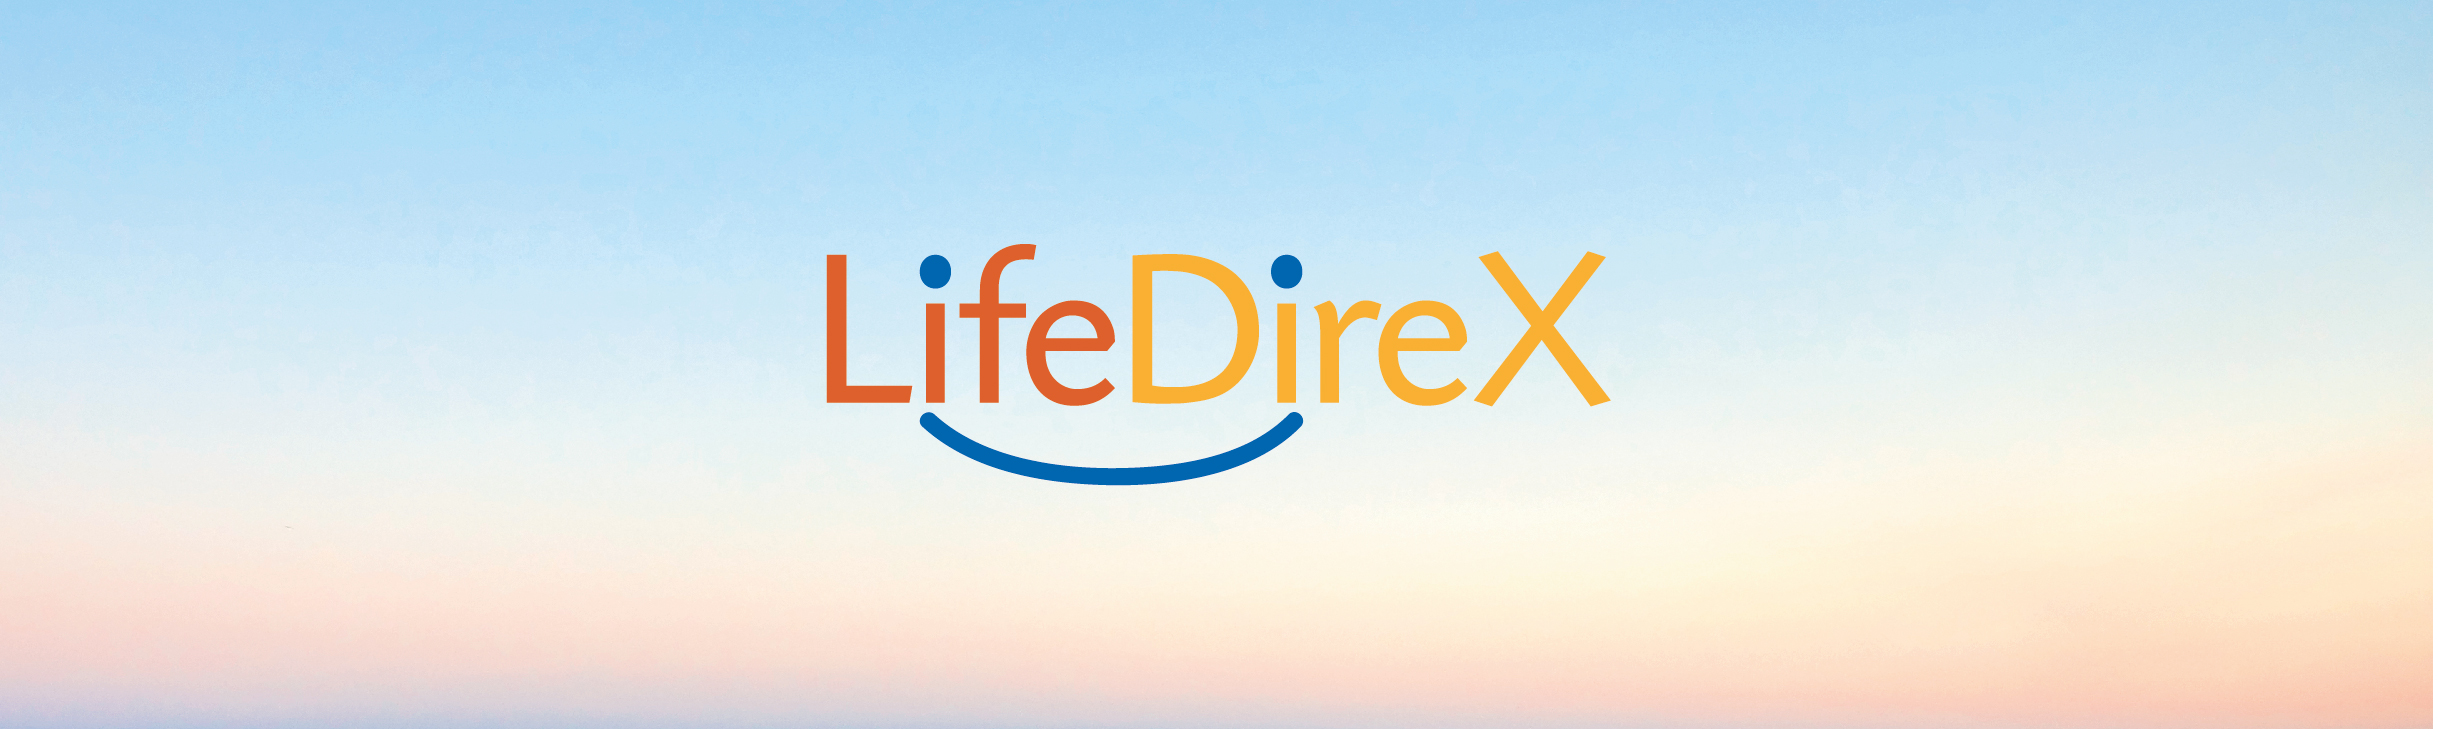 About lifedirex